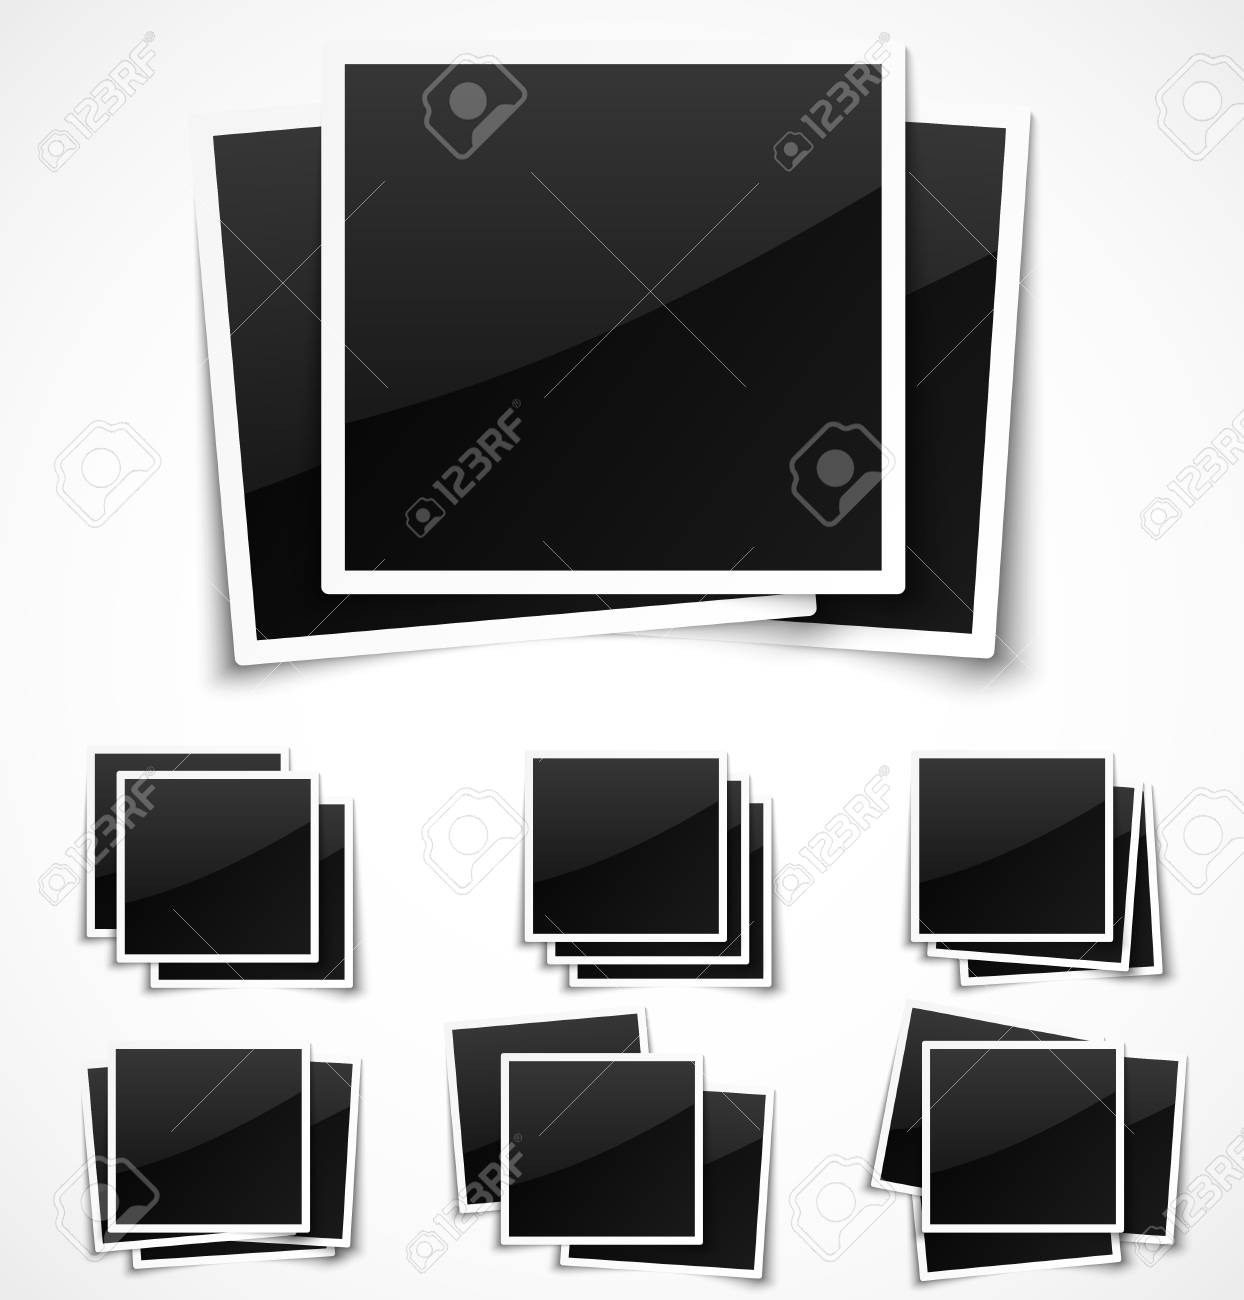 Square empty photo frames on white background. Stock Vector - 18585498